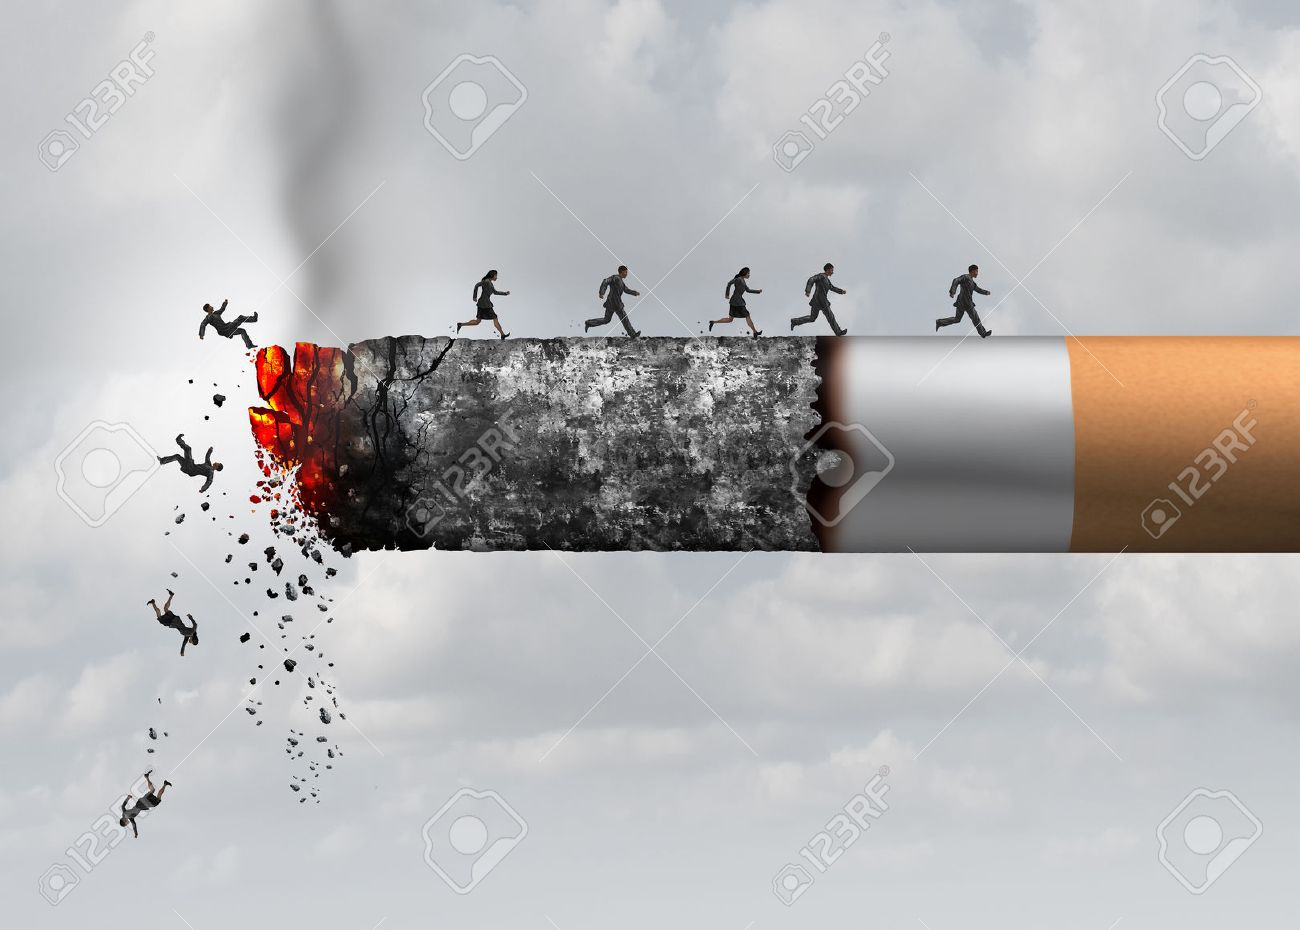 Smoking death and danger concept as a cigarette burning with people falling and escaping the hot burning ash as a metaphor for toxic smoke exposure causing lung cancer and lethal health risks with 3D illustration elements. Stock Illustration - 60688204